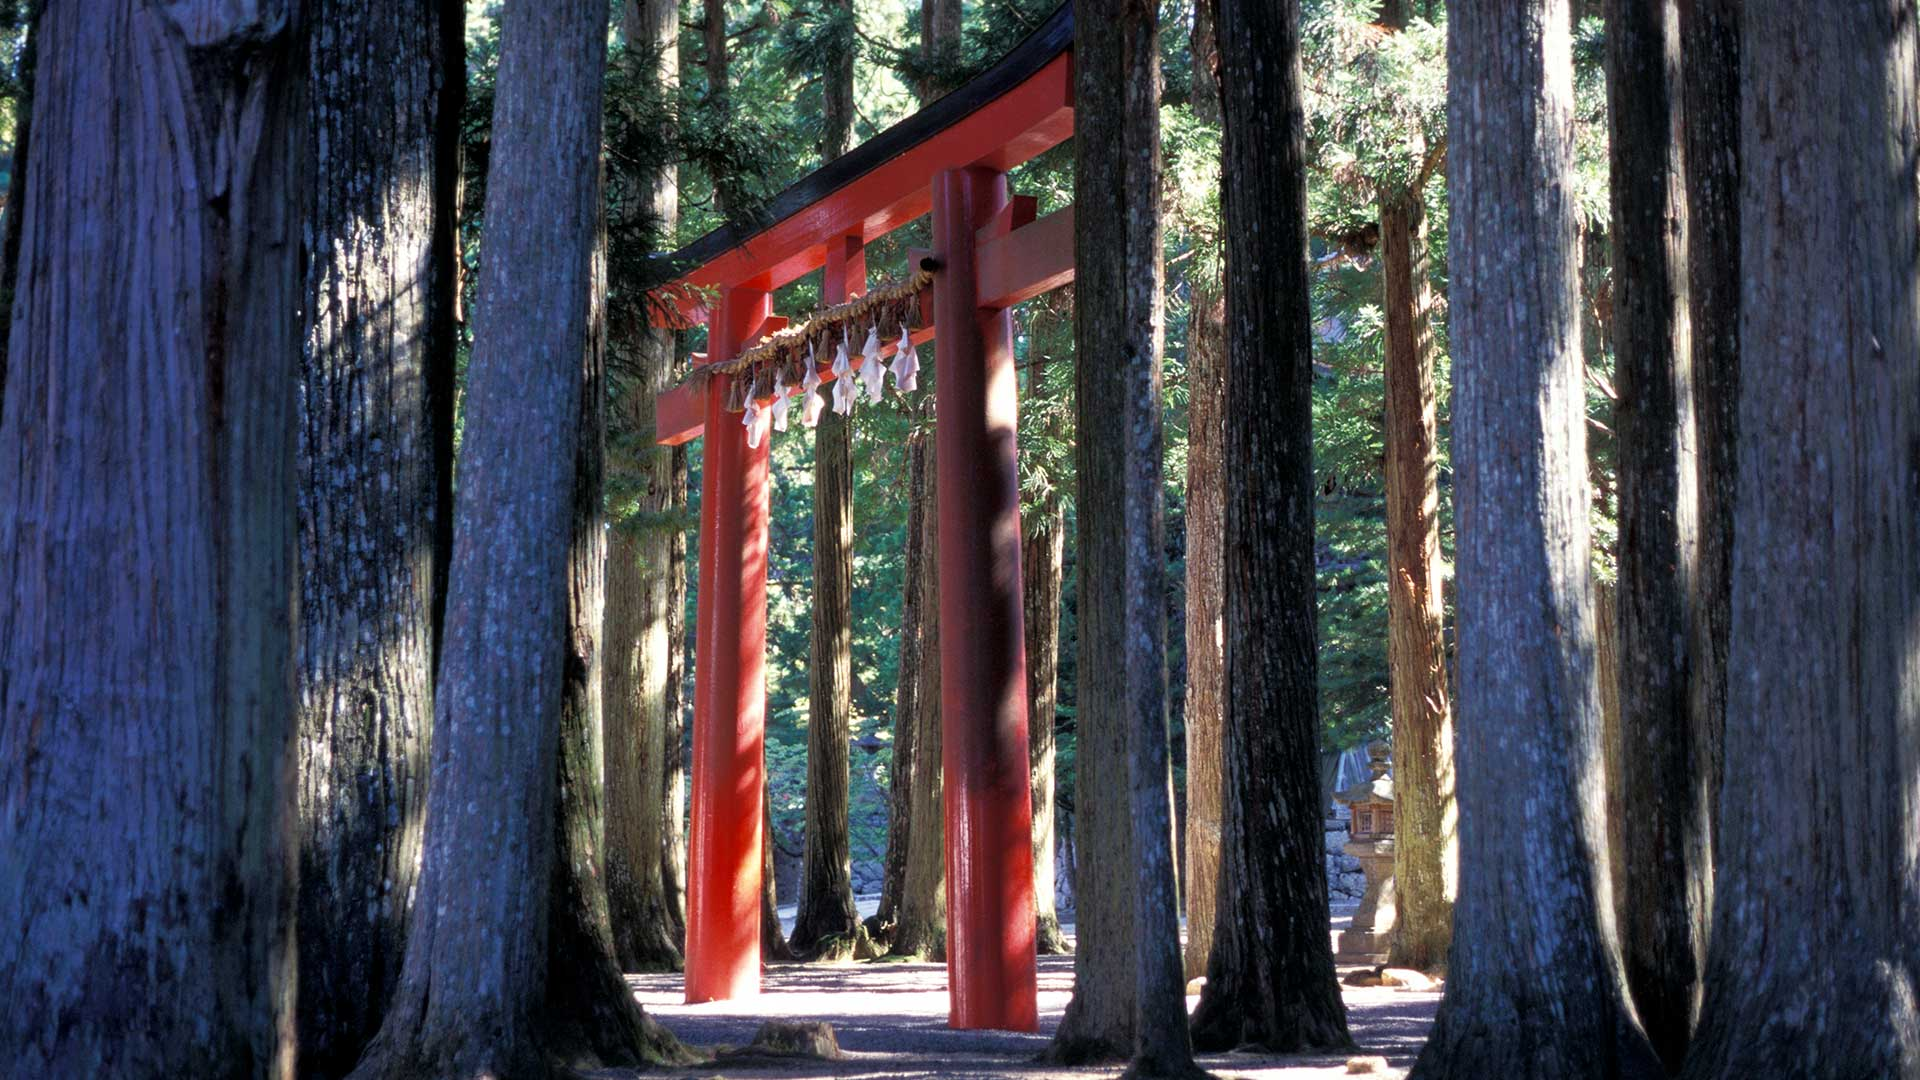 Tori gate in forest on Mount Koya